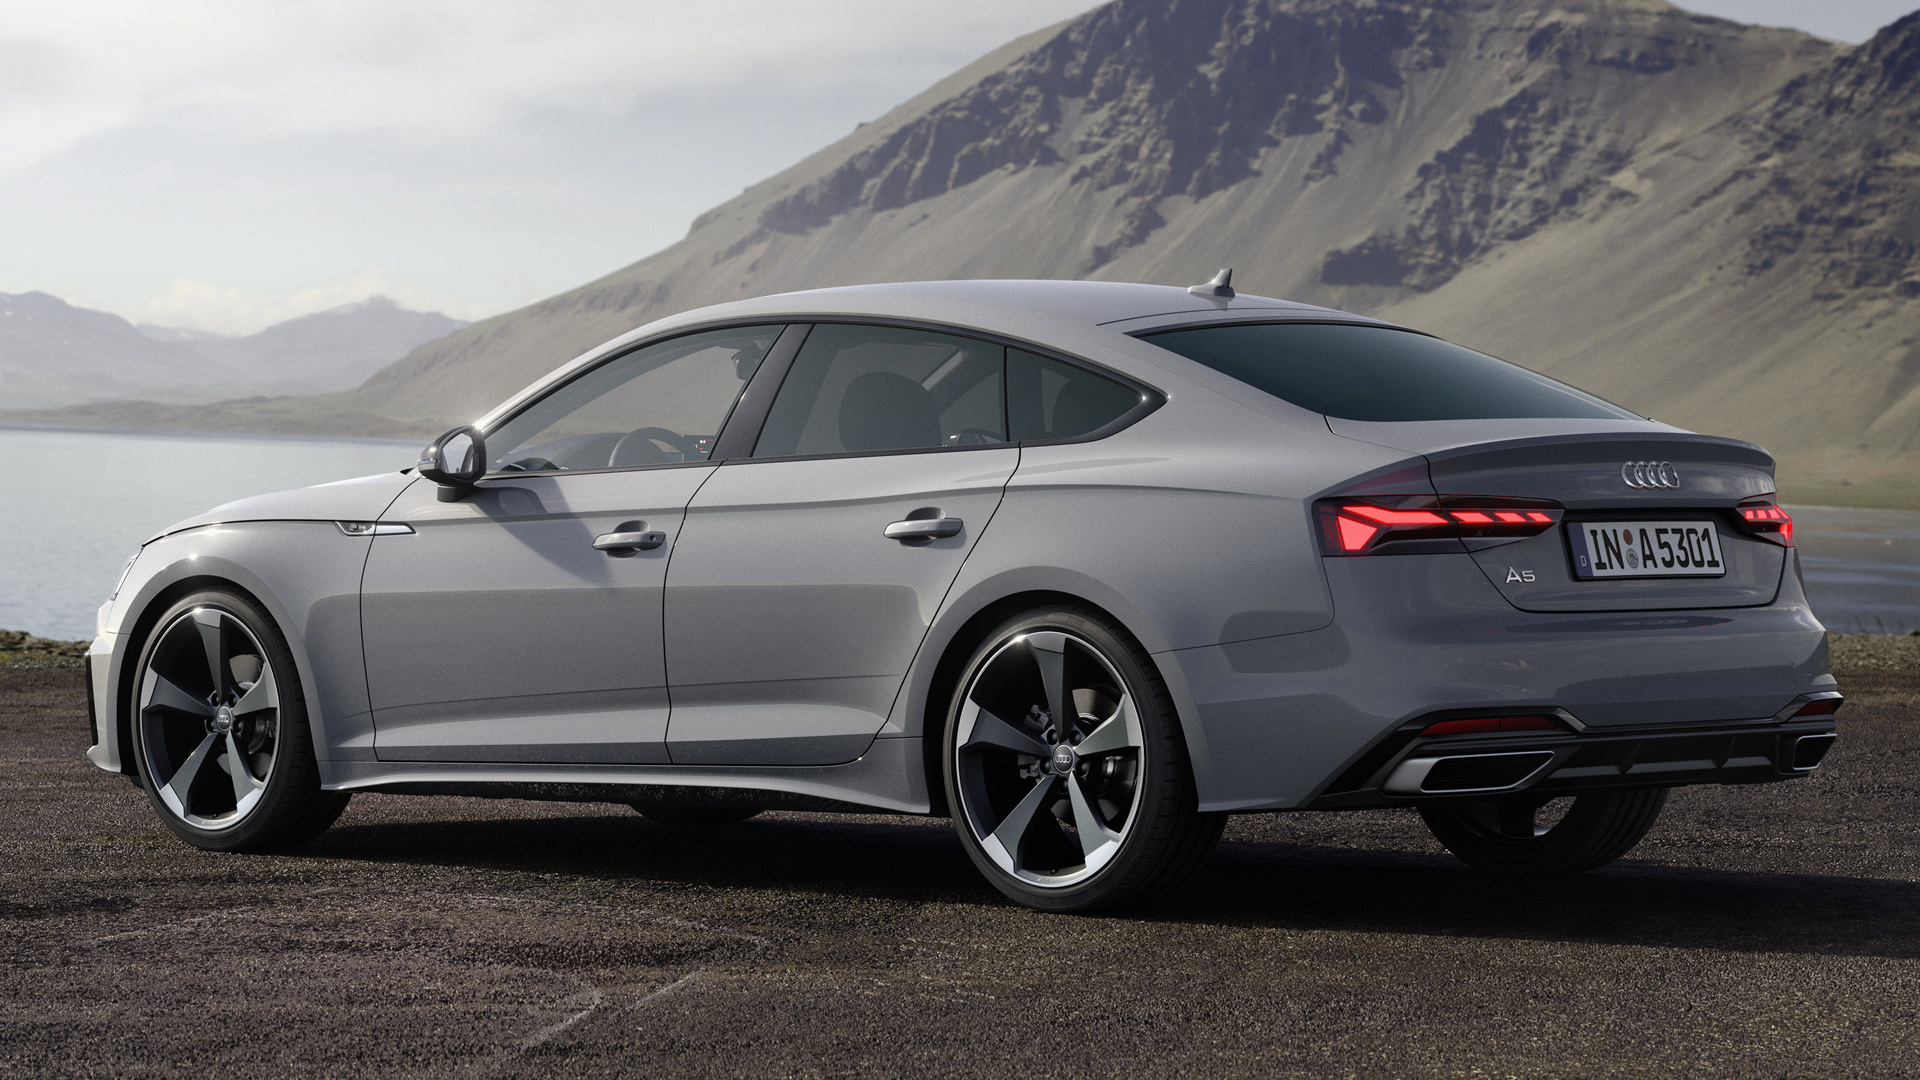 2020 Audi A5s Redesign